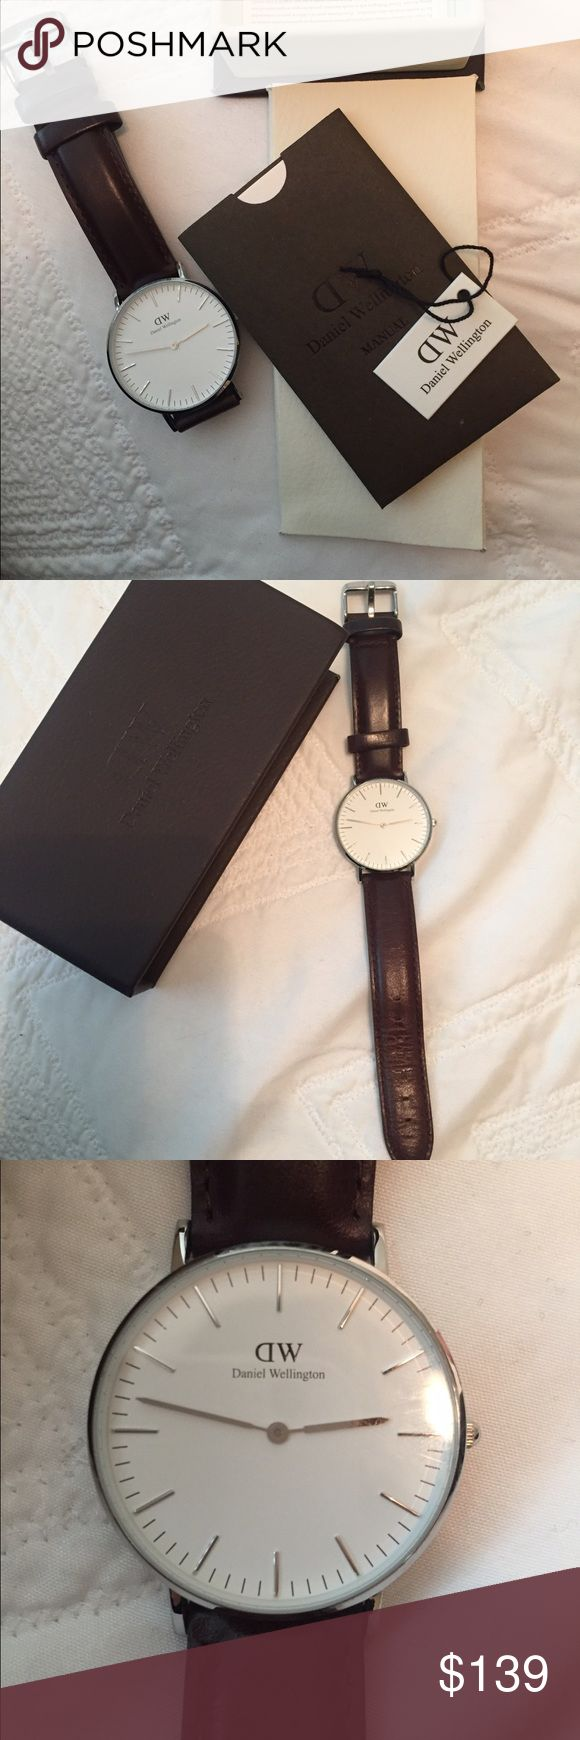 Classic Daniel Wellington watch 36mm Daniel Wellington classic watch, 36mm, dark brown strap. Literally worn once, I bought it because I thought I had lost my other one and found it shortly after. No scratches. Daniel Wellington Accessories Watches